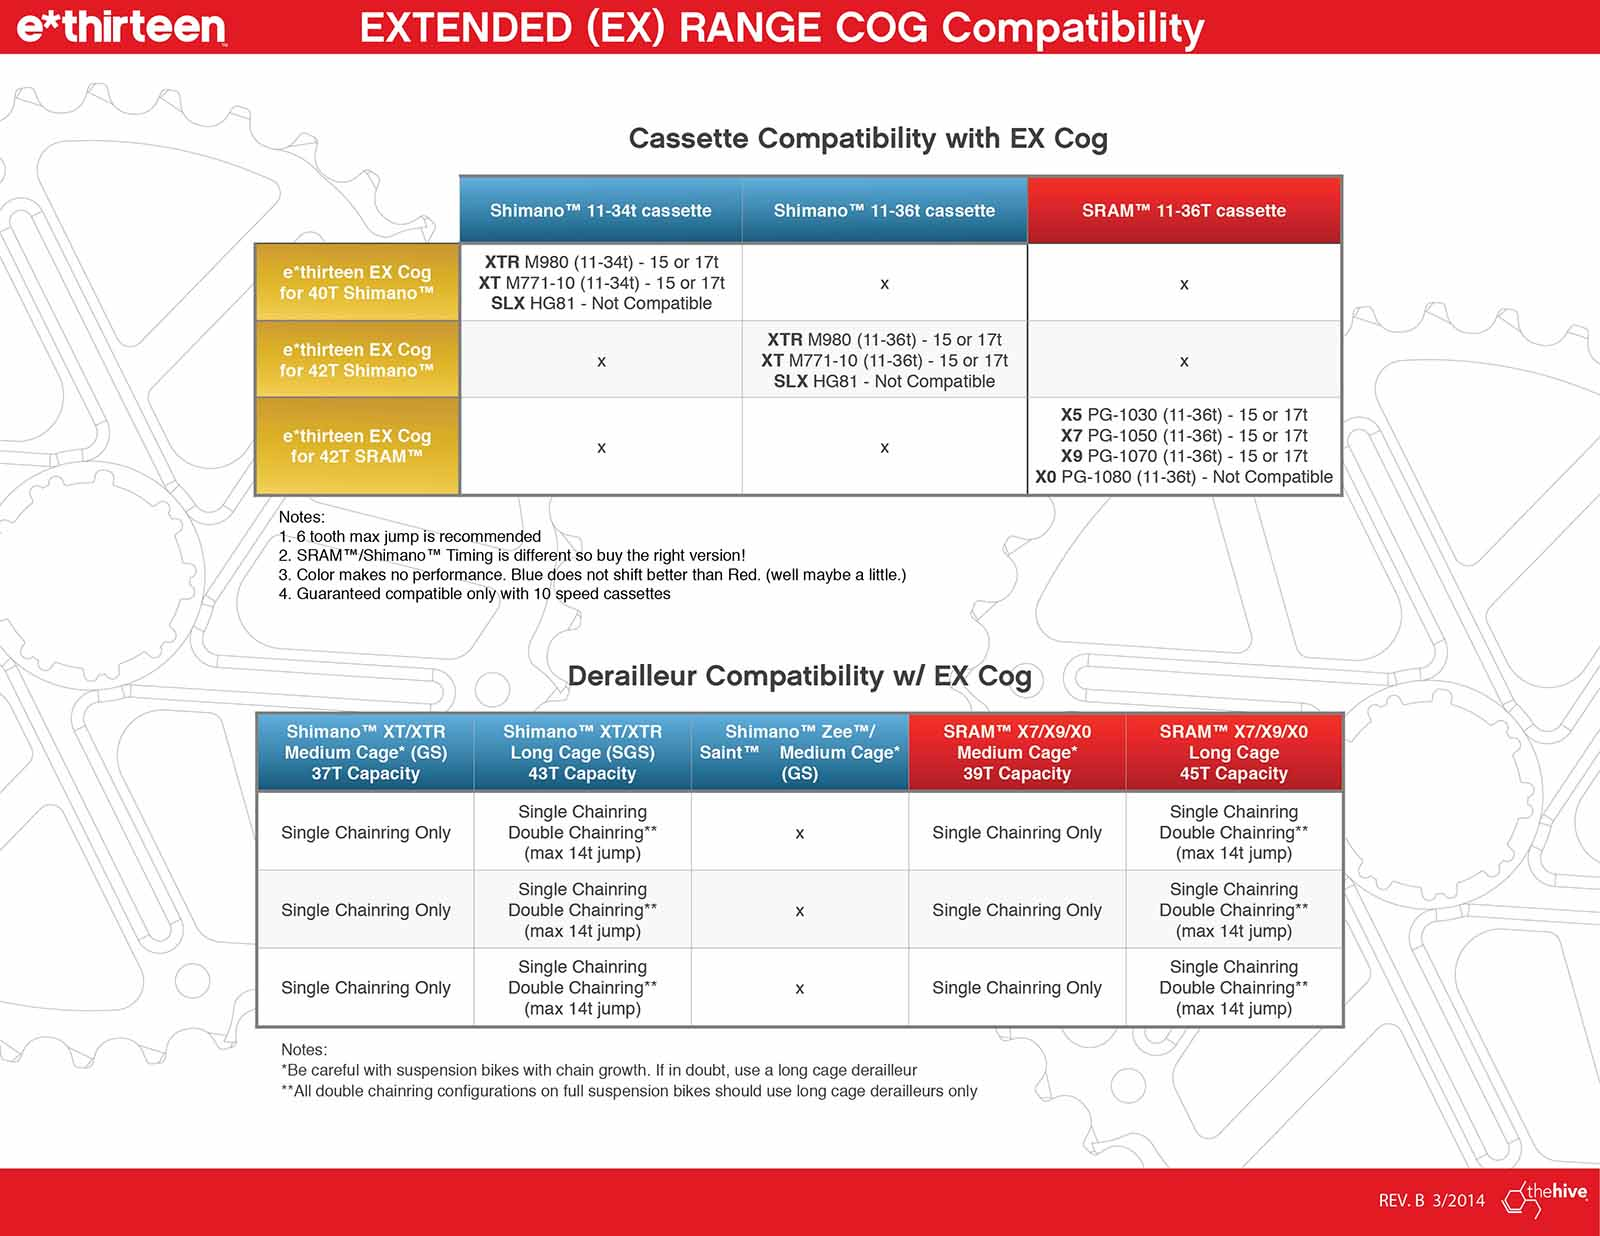 Extended Range Cog Compatibility_B